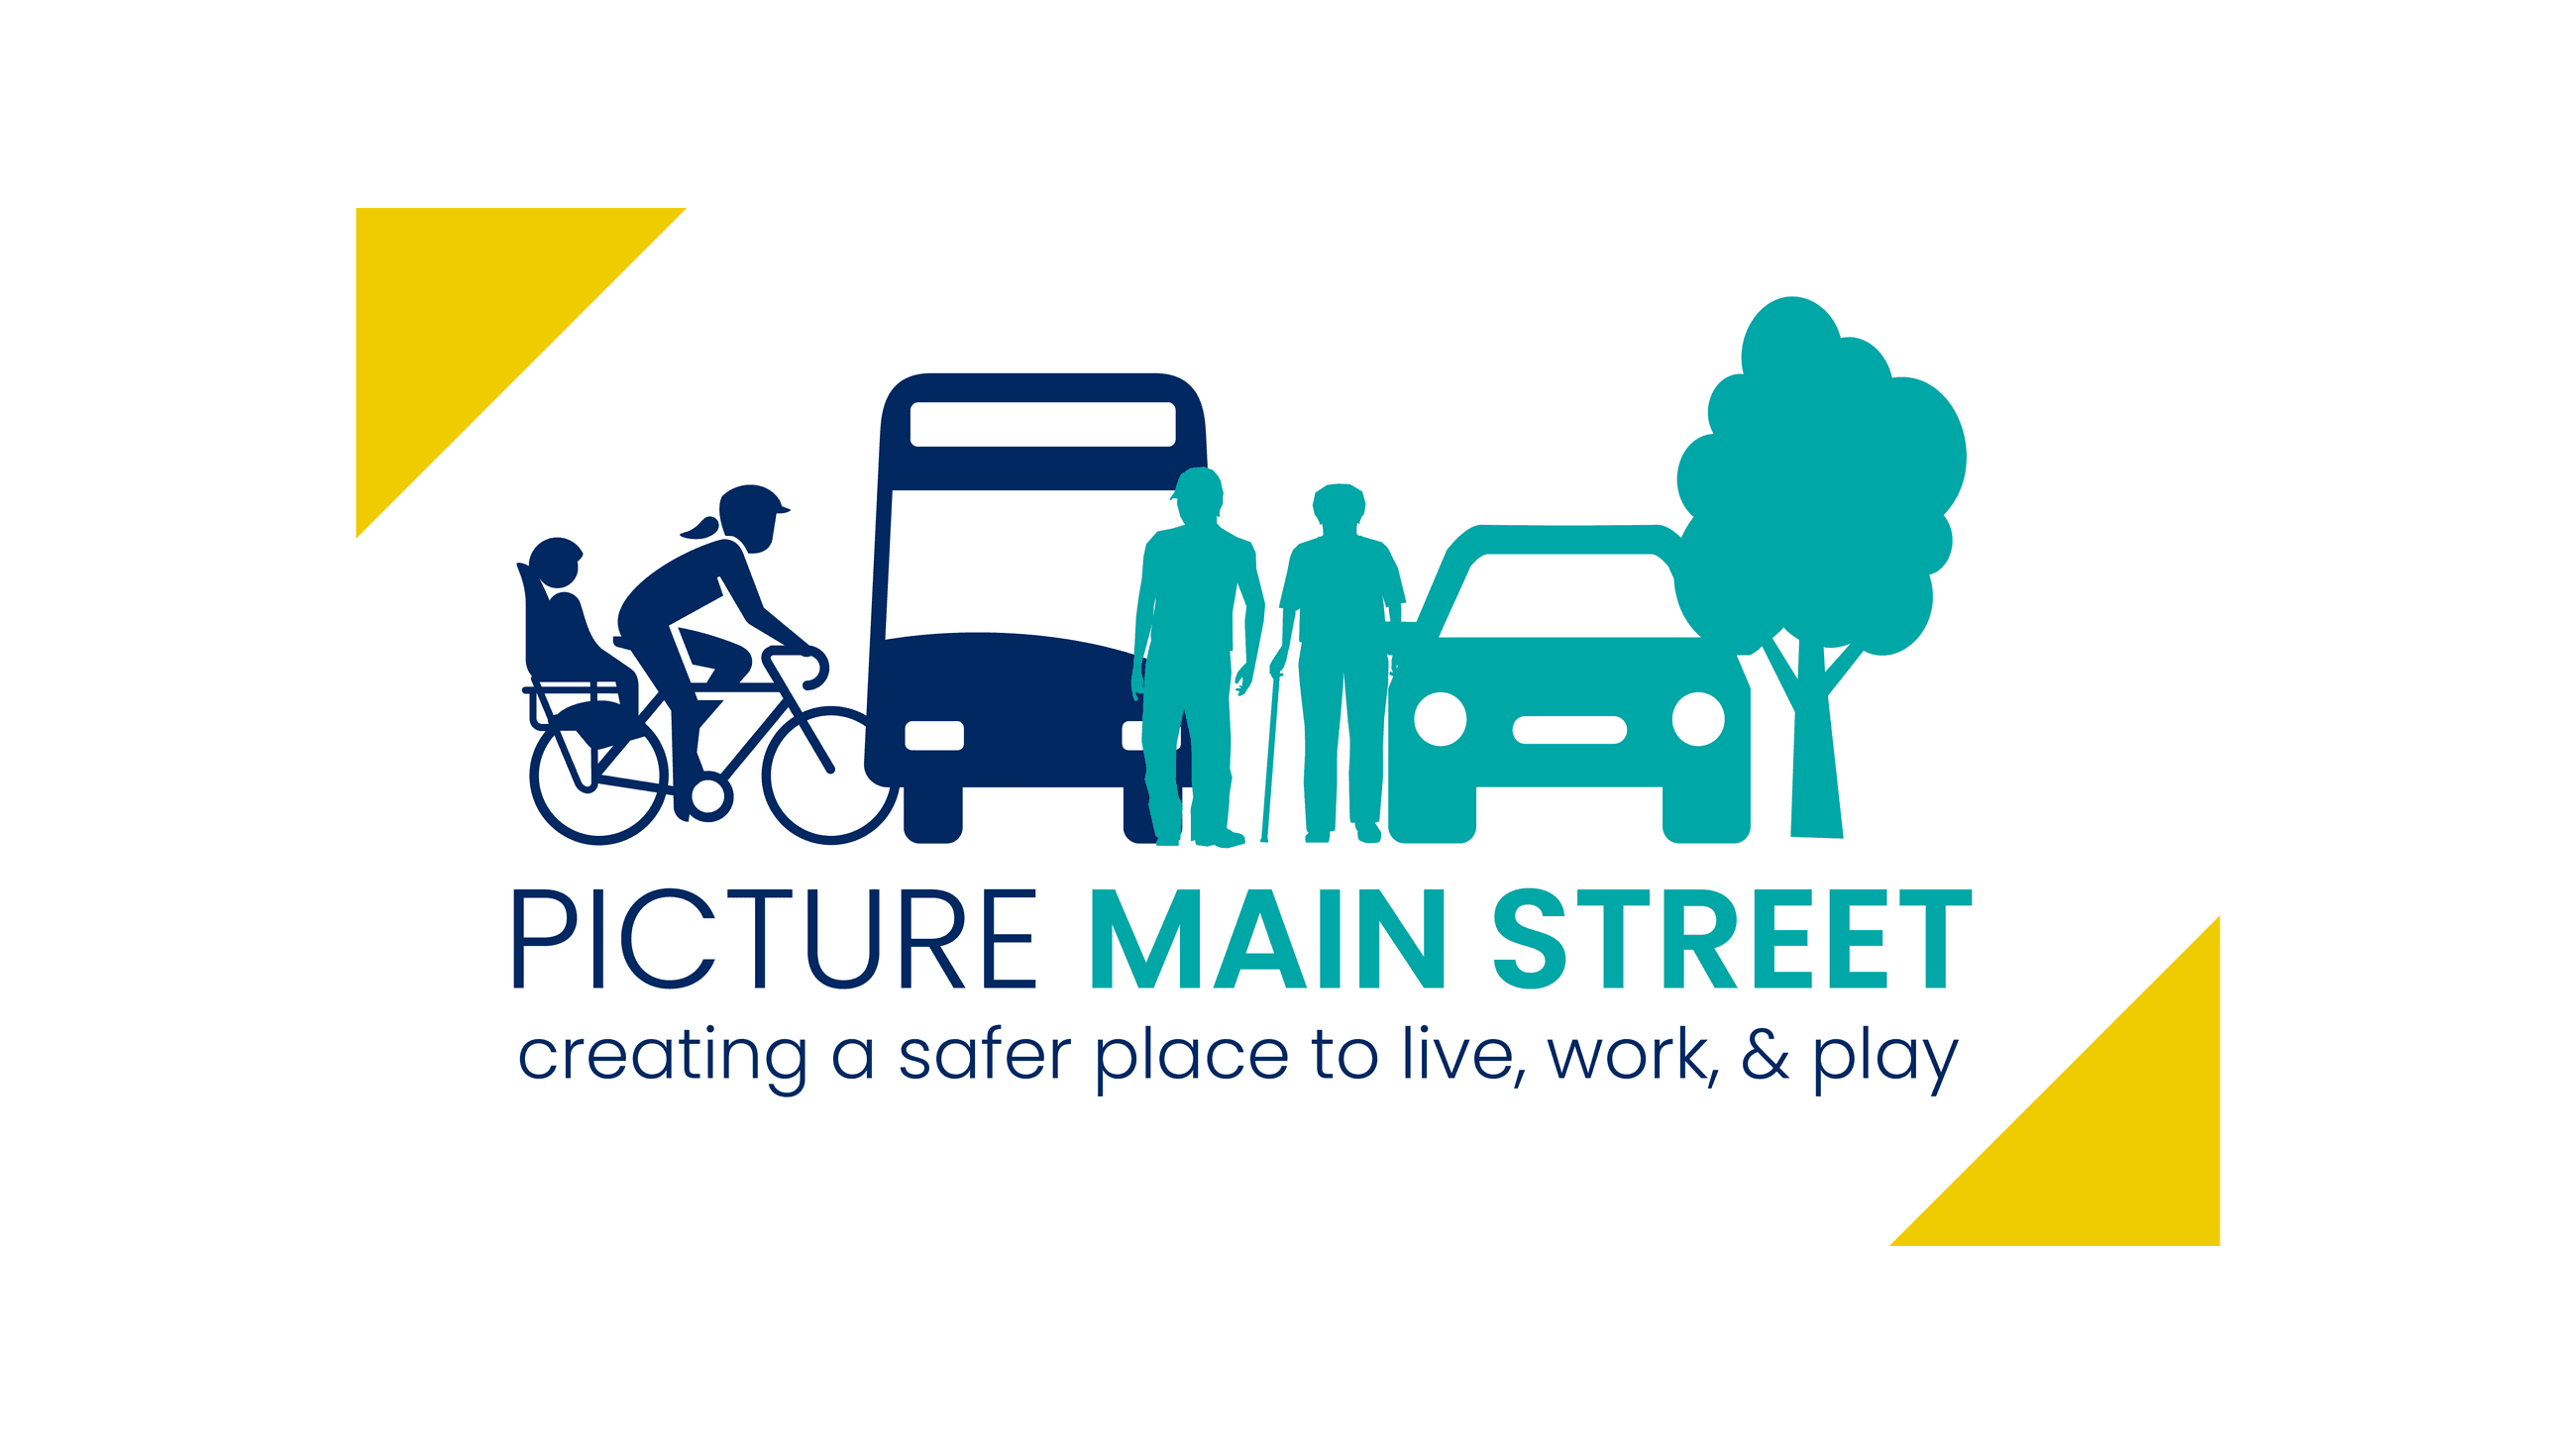 Picture Main Street-creating a safer place to live, work, and play